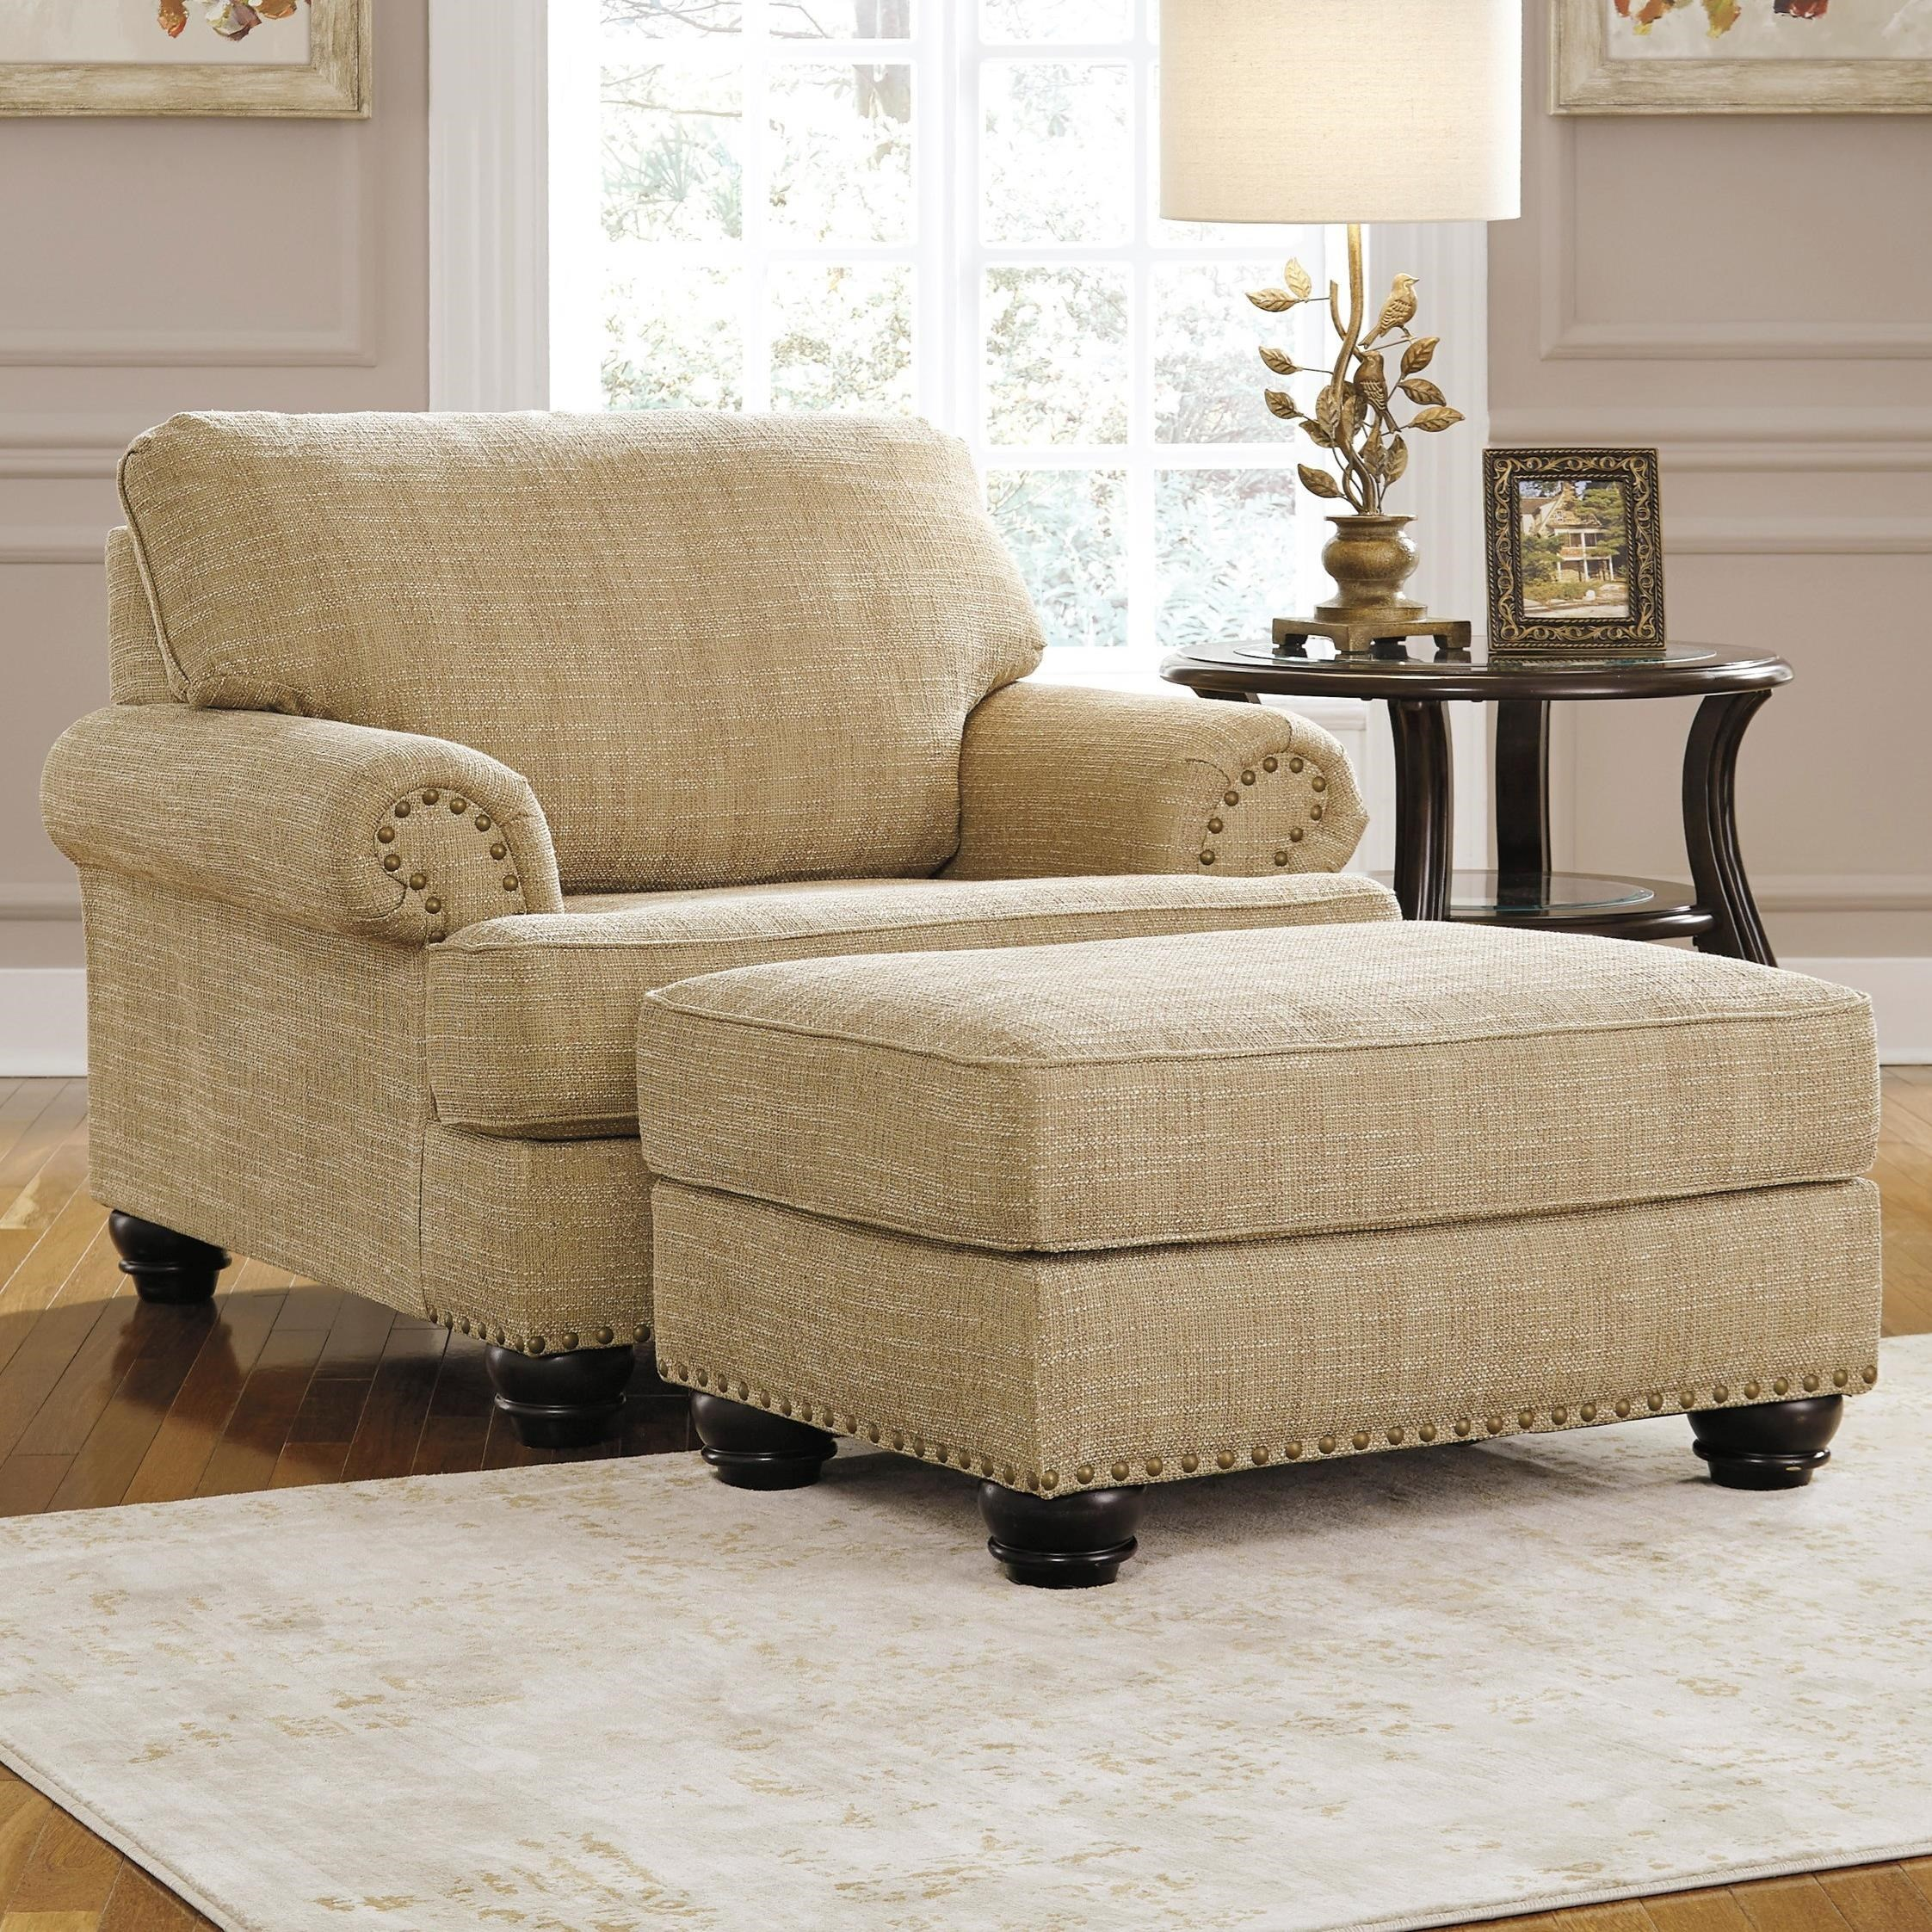 Benchcraft Candoro Chair and a Half & Ottoman   Boulevard Home